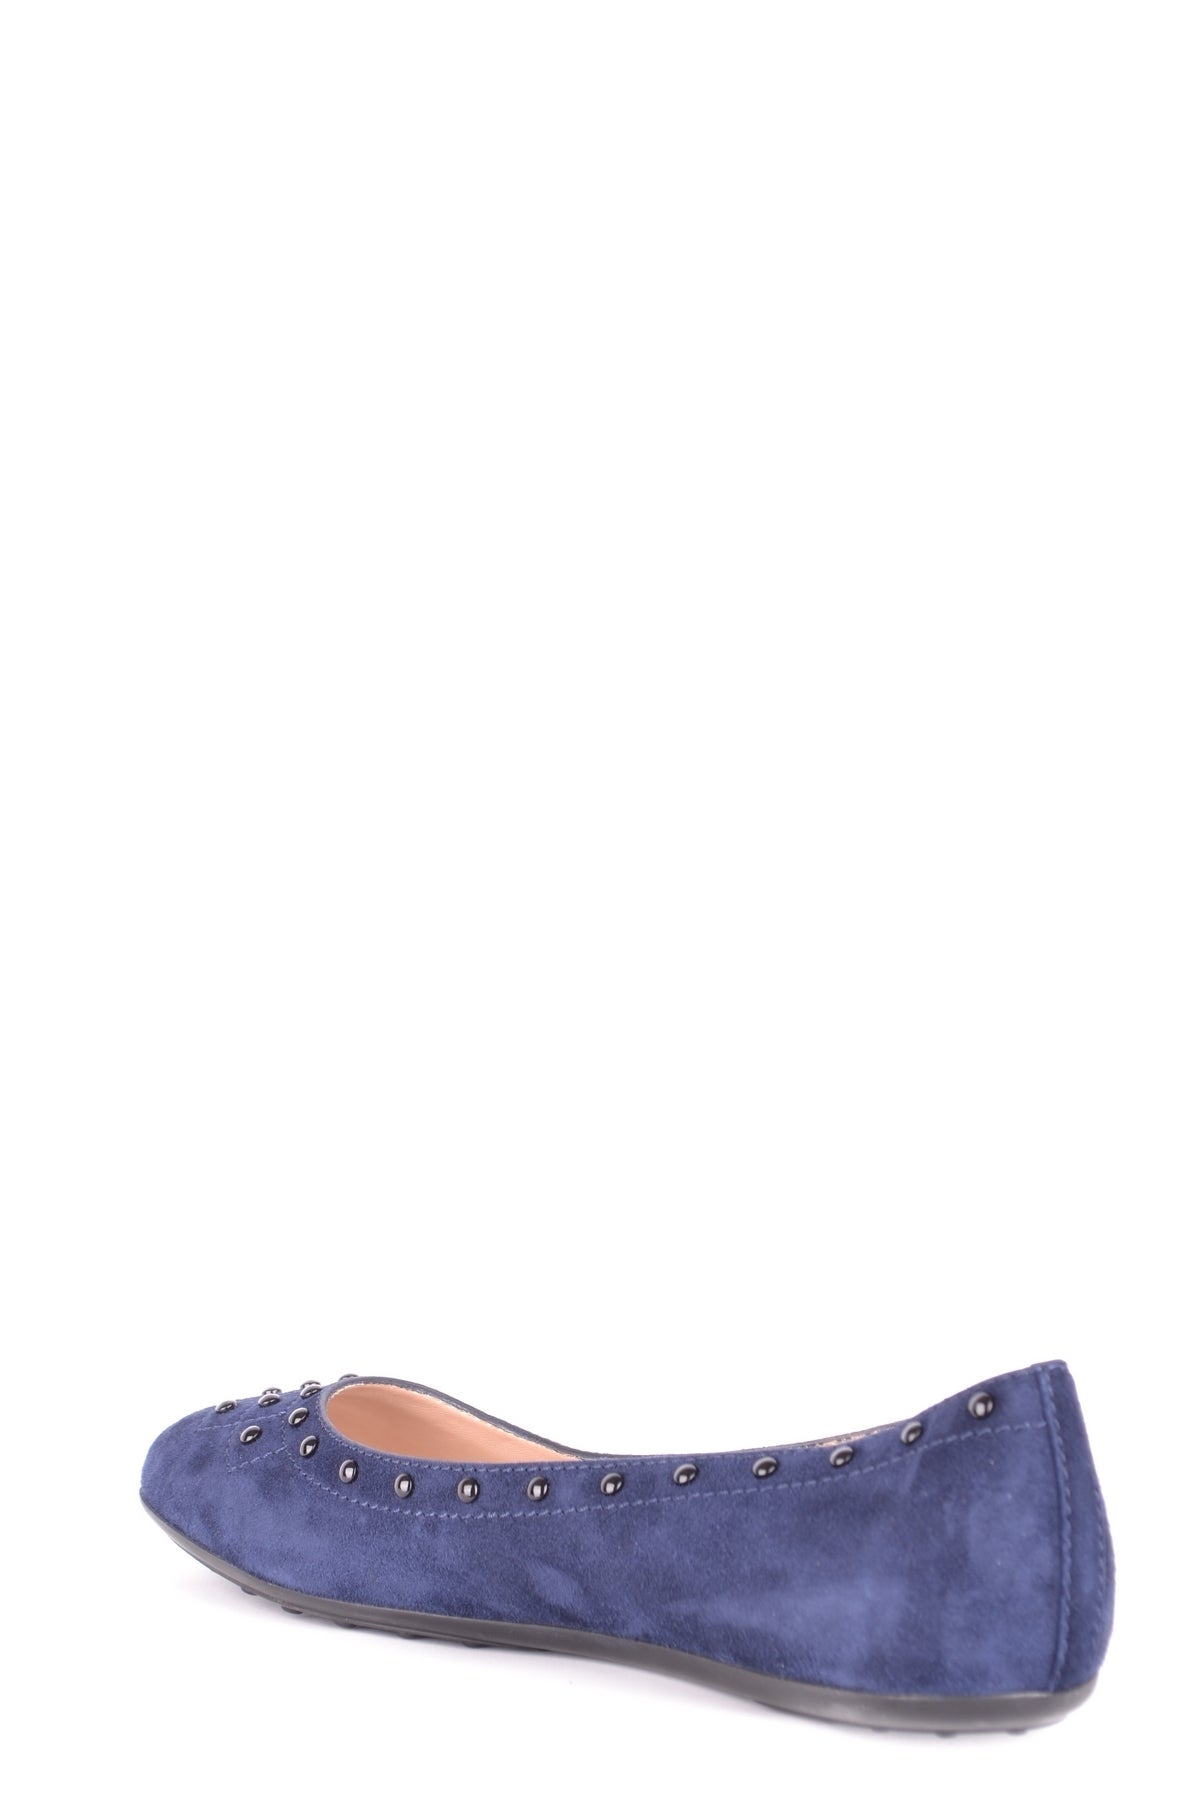 Shoes Tod'S-Ballet flats - WOMAN-Product Details Type Of Accessory: ShoesSeason: Spring / SummerTerms: New With LabelMain Color: BlueGender: WomanMade In: ItalyManufacturer Part Number: Xxw71A0Y311Hr0U824Size: EuYear: 2018Composition: Chamois 100%-Keyomi-Sook